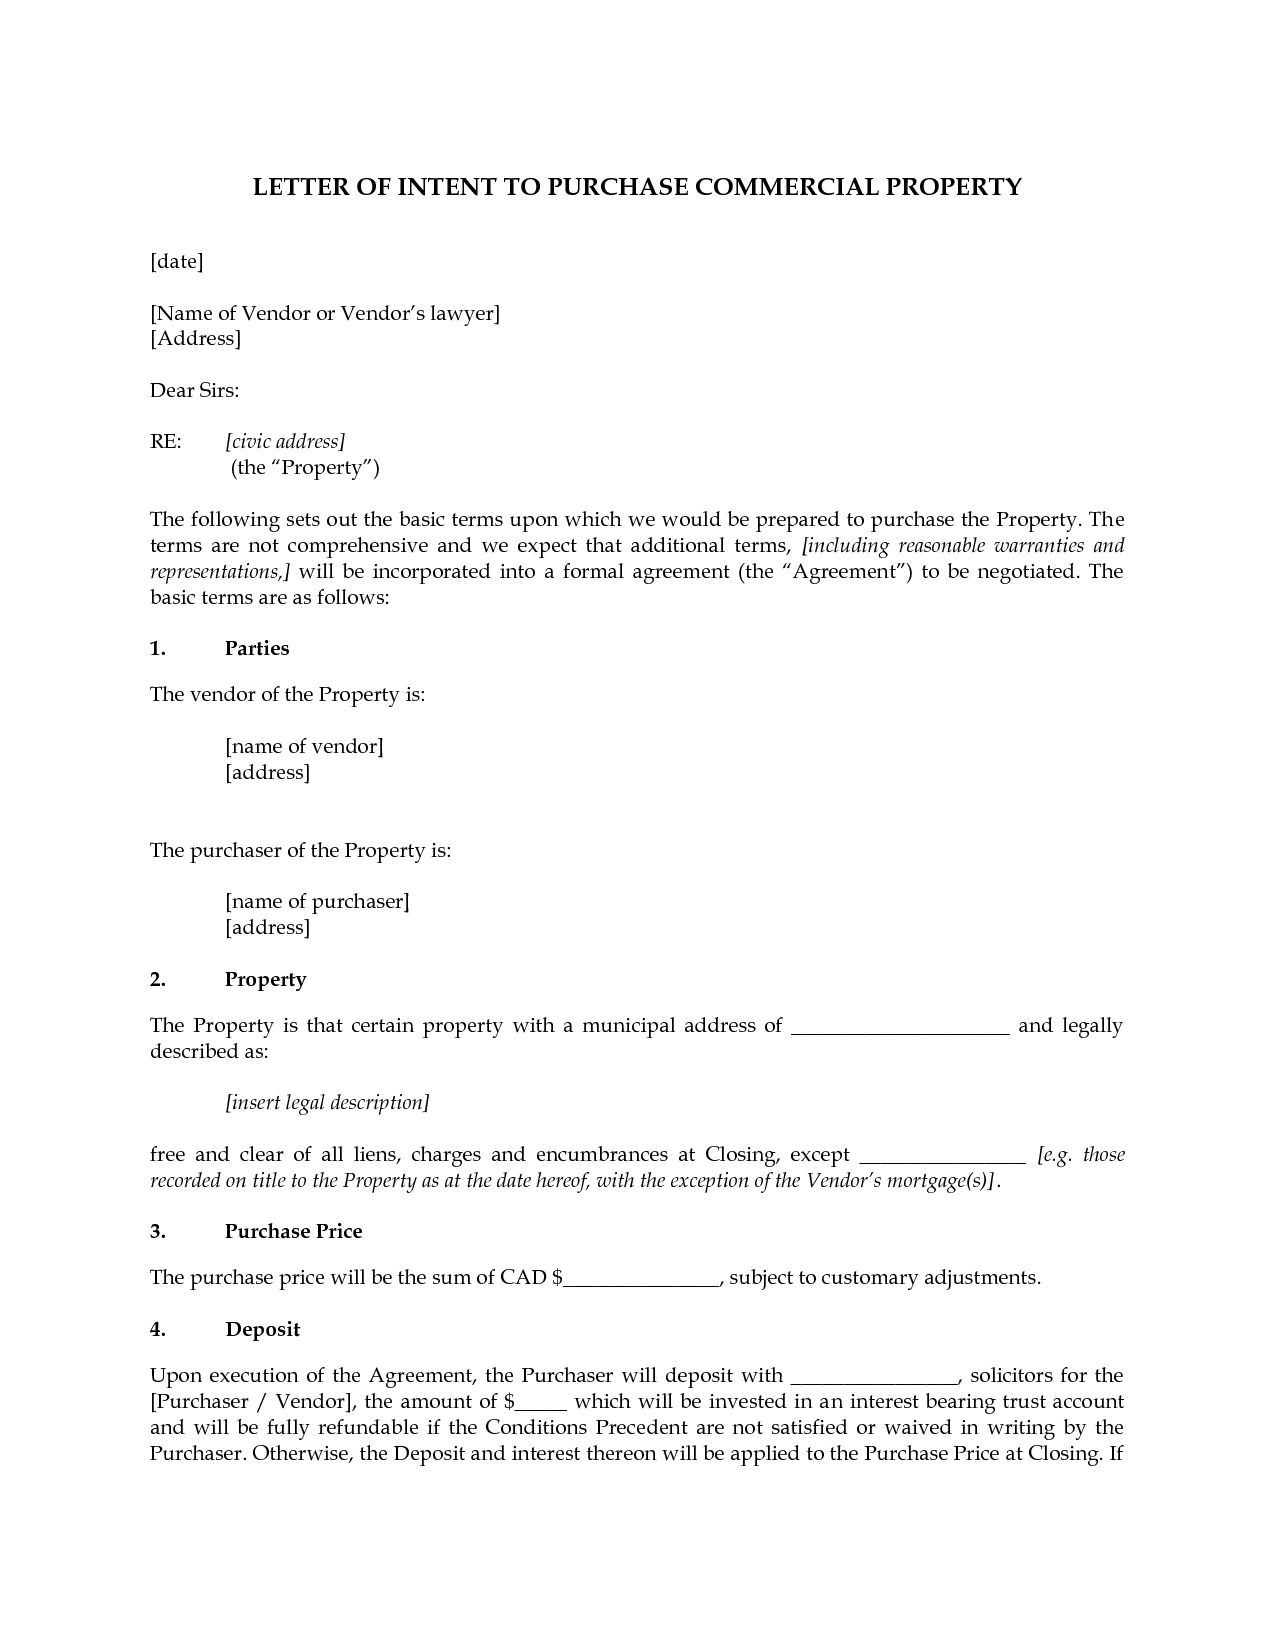 Commercial Real Estate Lease Letter Of Intent Template - Mercial Real Estate Lease Letter Intent Template Purchase